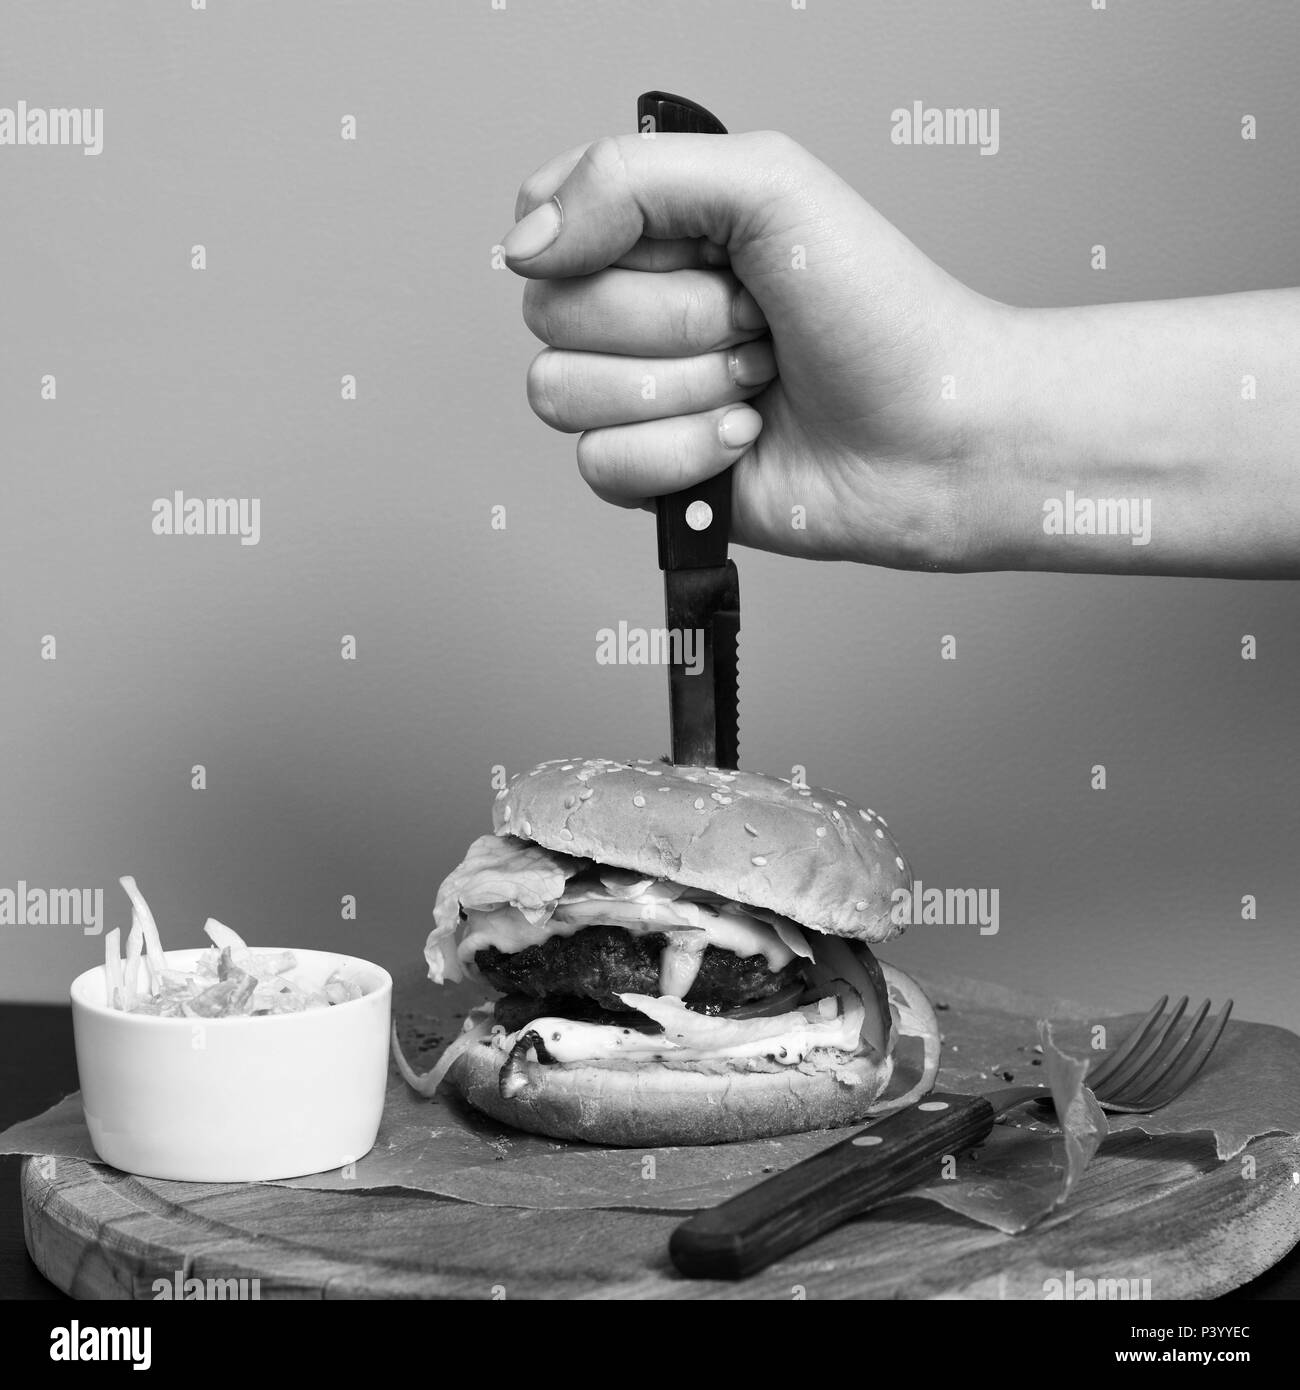 Hand stubbing burger with knife stock image